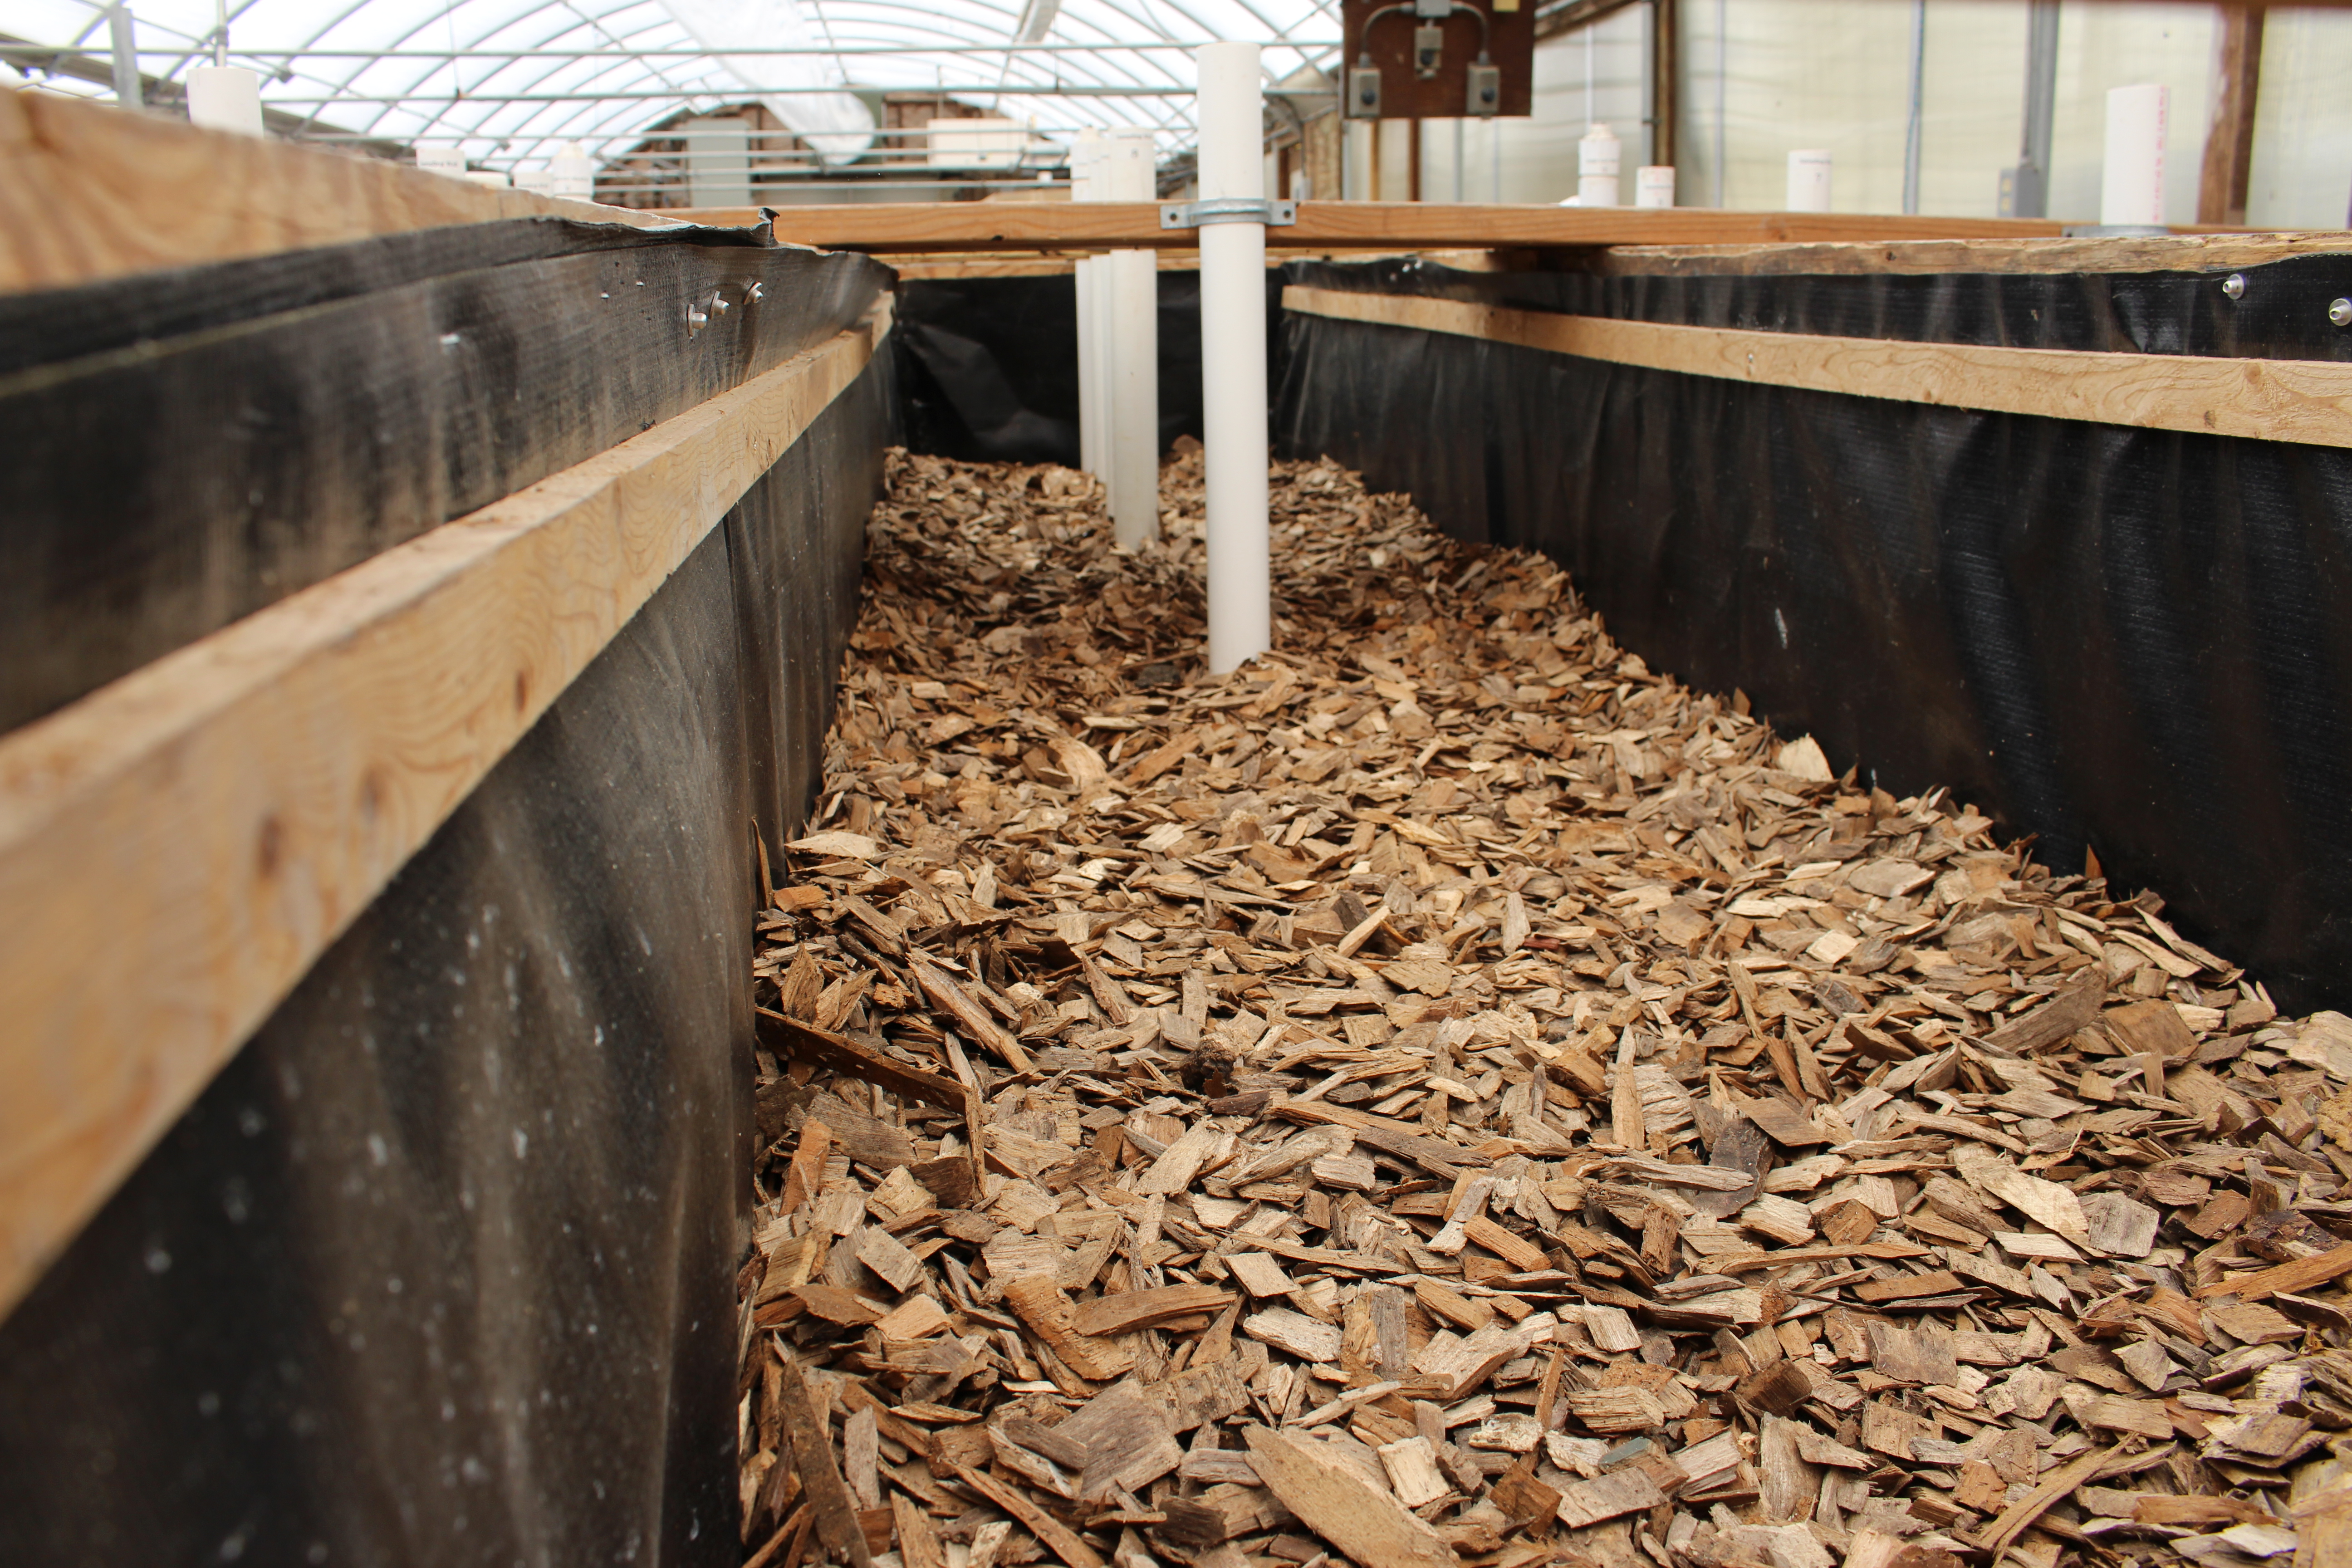 An inside view, one of four experimental denitrification woodchip bioreactors located at the Freshwater Institute.